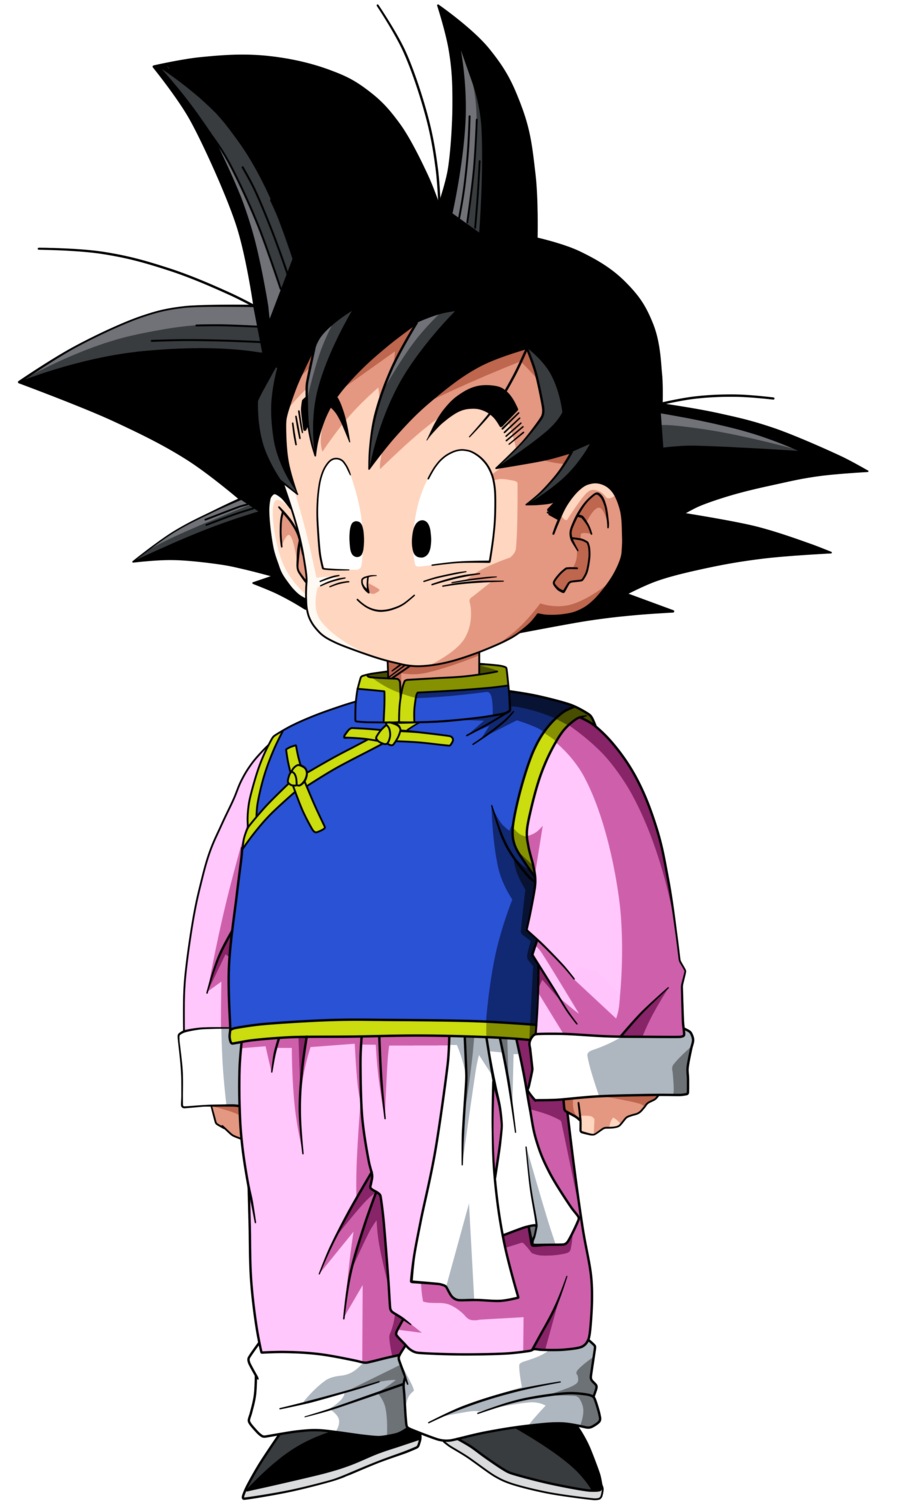 goten dbz vs wiki fandom powered by wikia